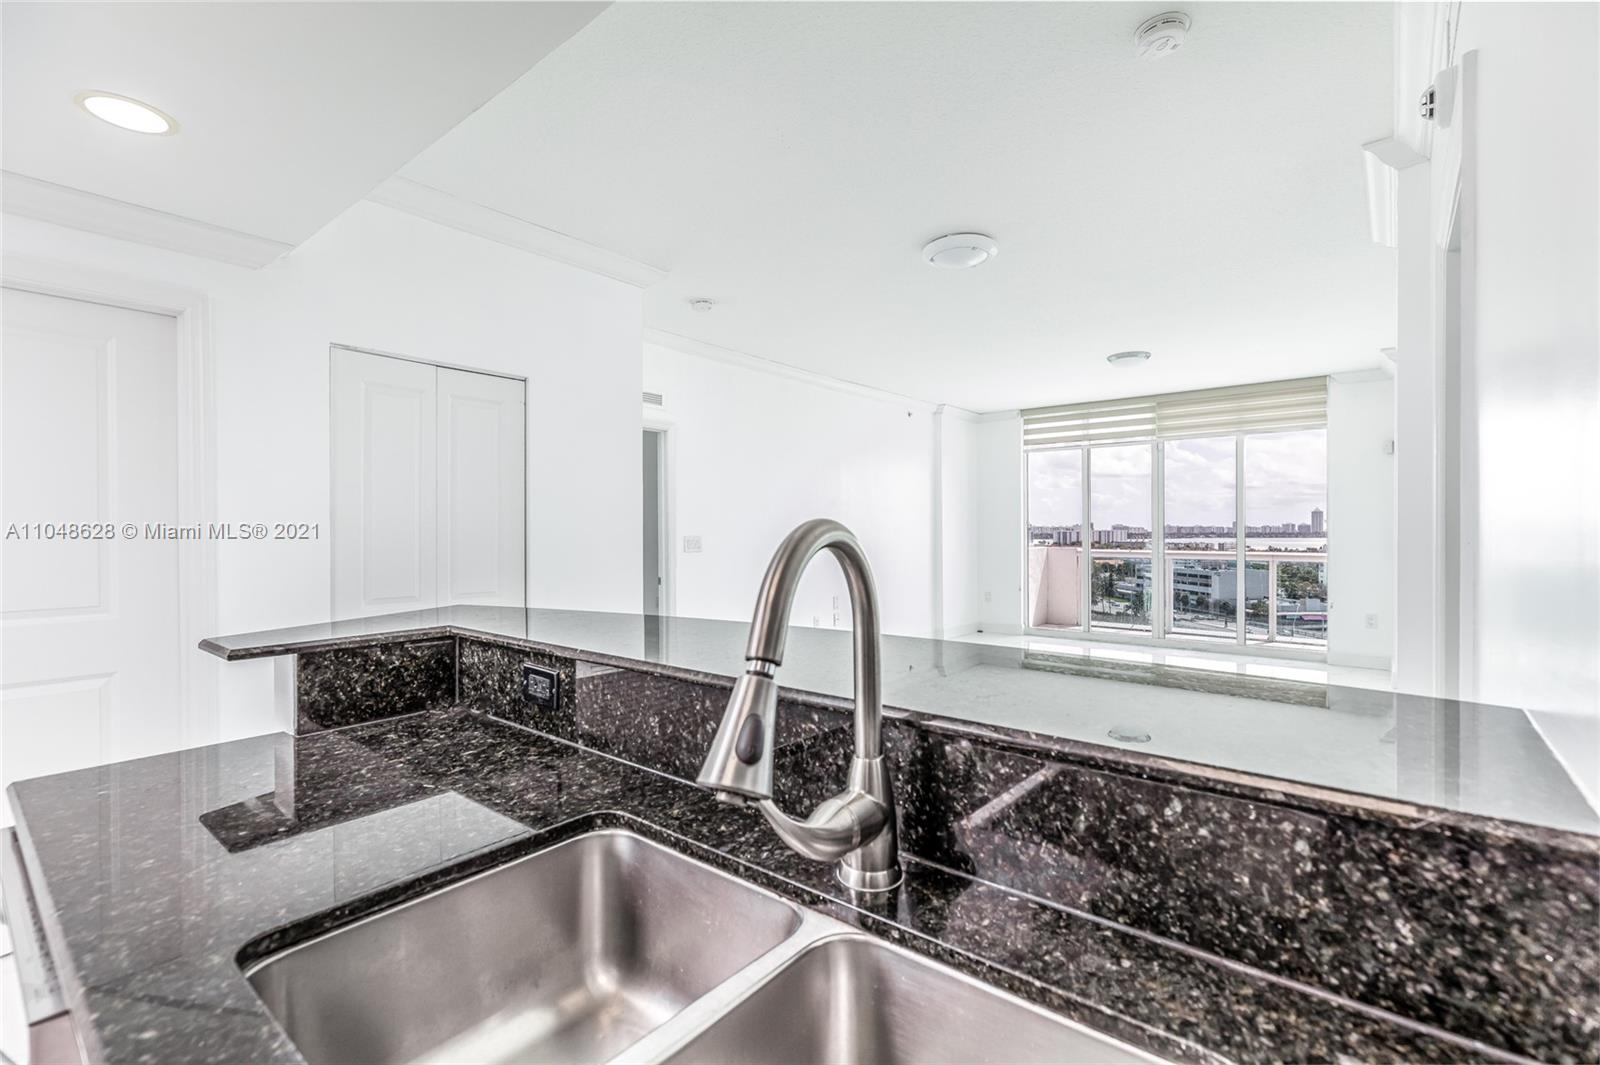 Amazing unit at the 360 condominium!! Fully Remodeled!! Featuring 2 Bedrooms and two baths, beautiful views from all rooms, panoramic floor to ceiling impact windows and sliding doors, expansive balcony, master bath with dual sinks and shower heads, fully equipped open style kitchen with stainless steel appliances and granite counter-tops, washer and dryer inside and plenty of natural light! Building offers a variety of amenities including a gym, sauna, two pools, clubhouse, marina and provides 24 hr gated security with valet and guest parking.